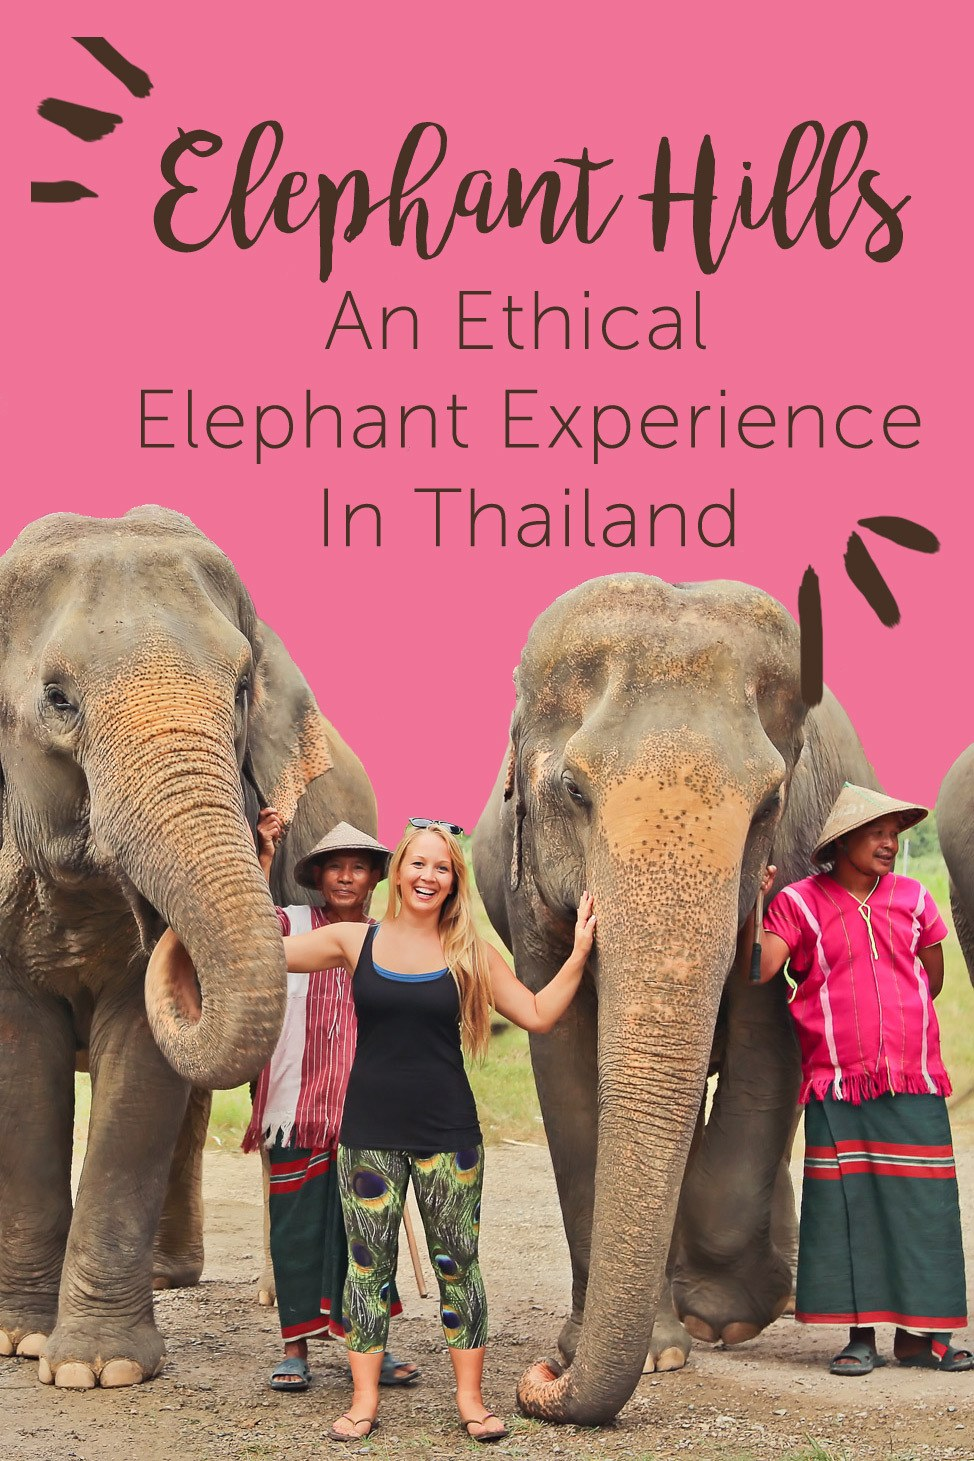 Elephant Hills: An Ethical Elephant Experience in Thailand